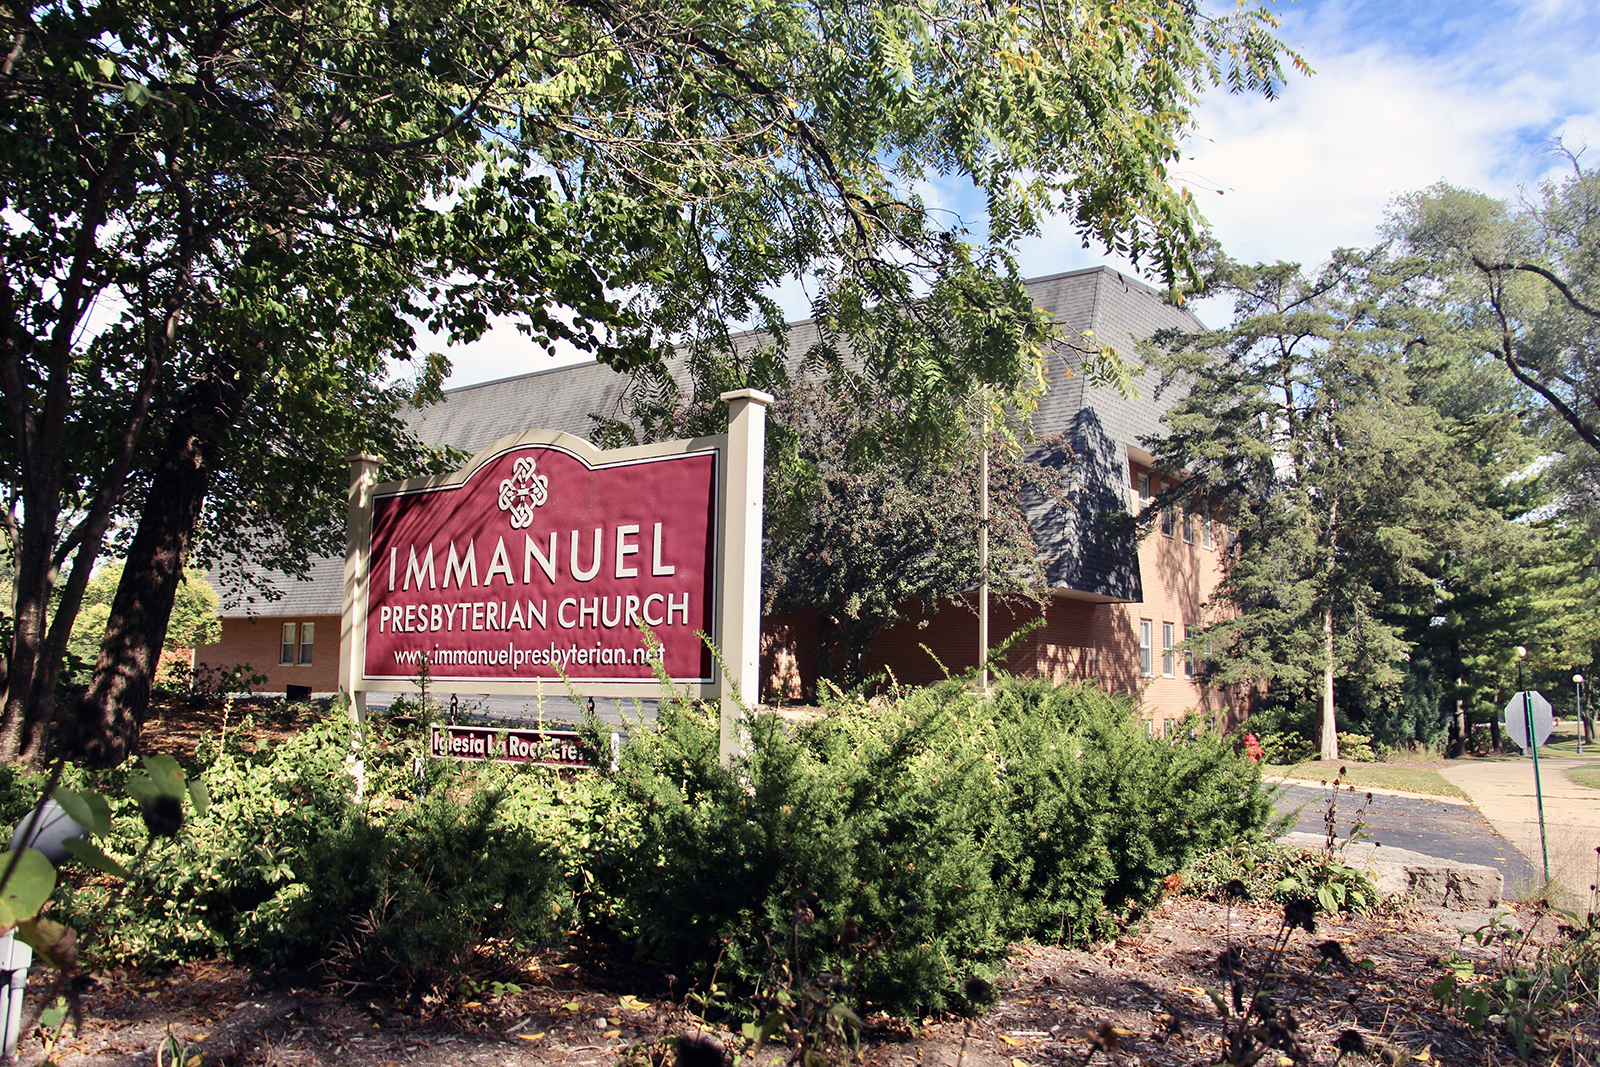 Immanuel Presbyterian Church in Warrenville, Illinois, on Sept. 23, 2021. RNS photo by Emily McFarlan Miller